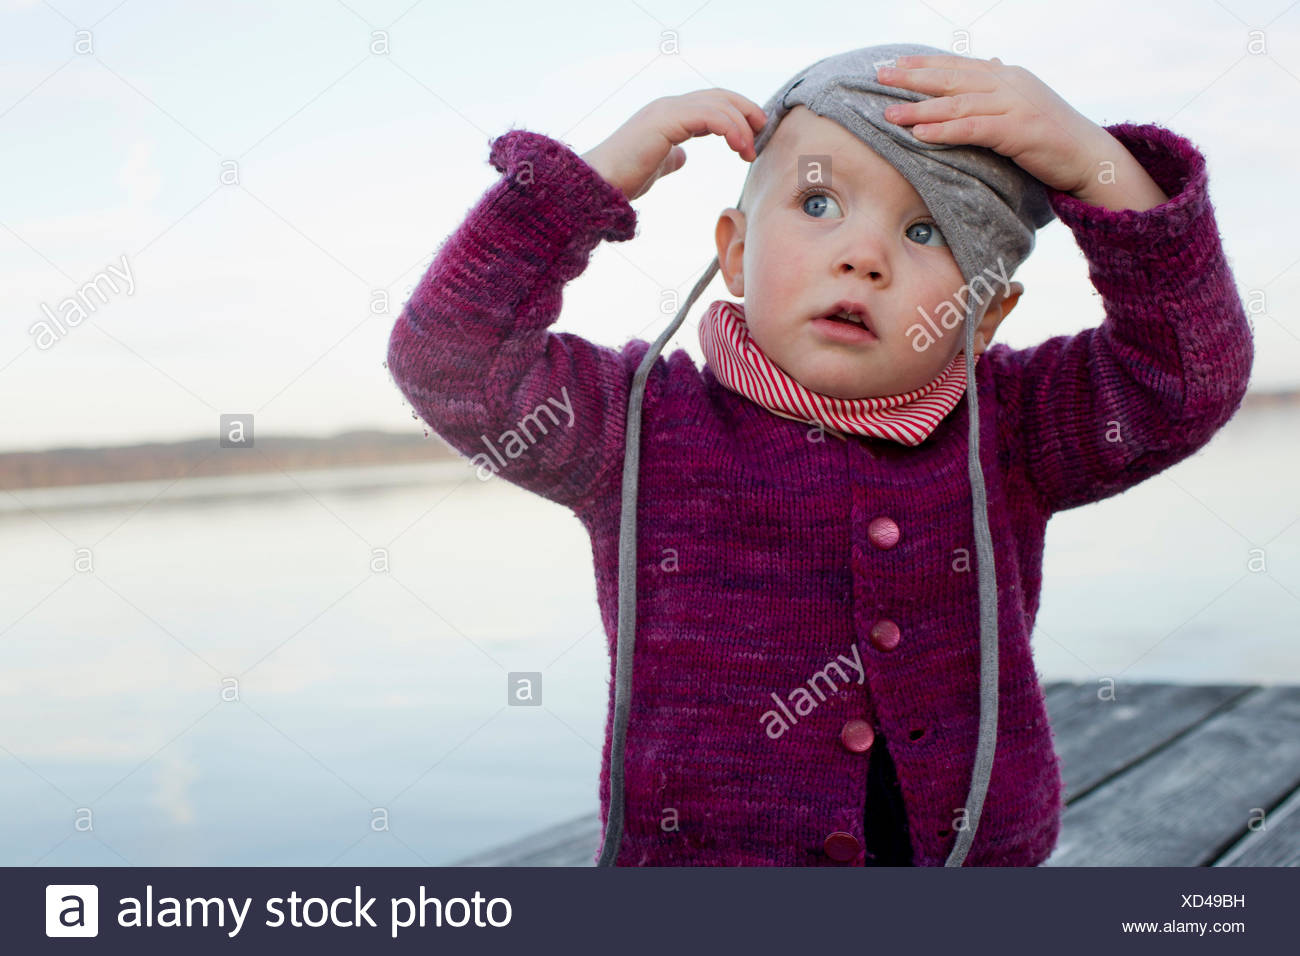 305ac699 Baby girl on lake pier trying to put on hat Stock Photo: 283451605 ...